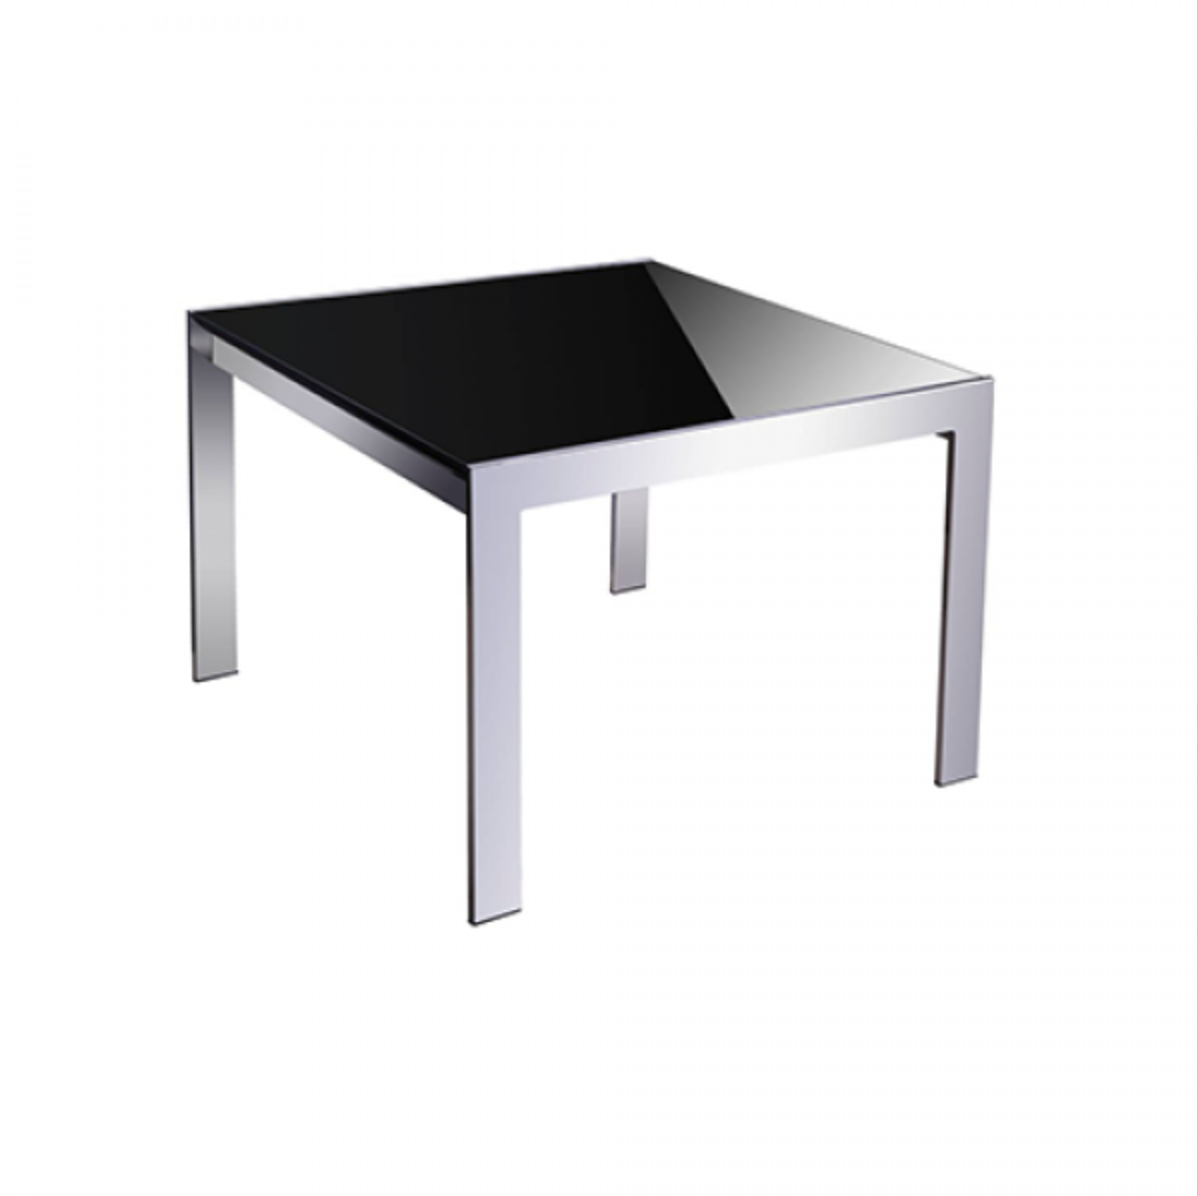 Forza™ Square Coffee Table - KiPP